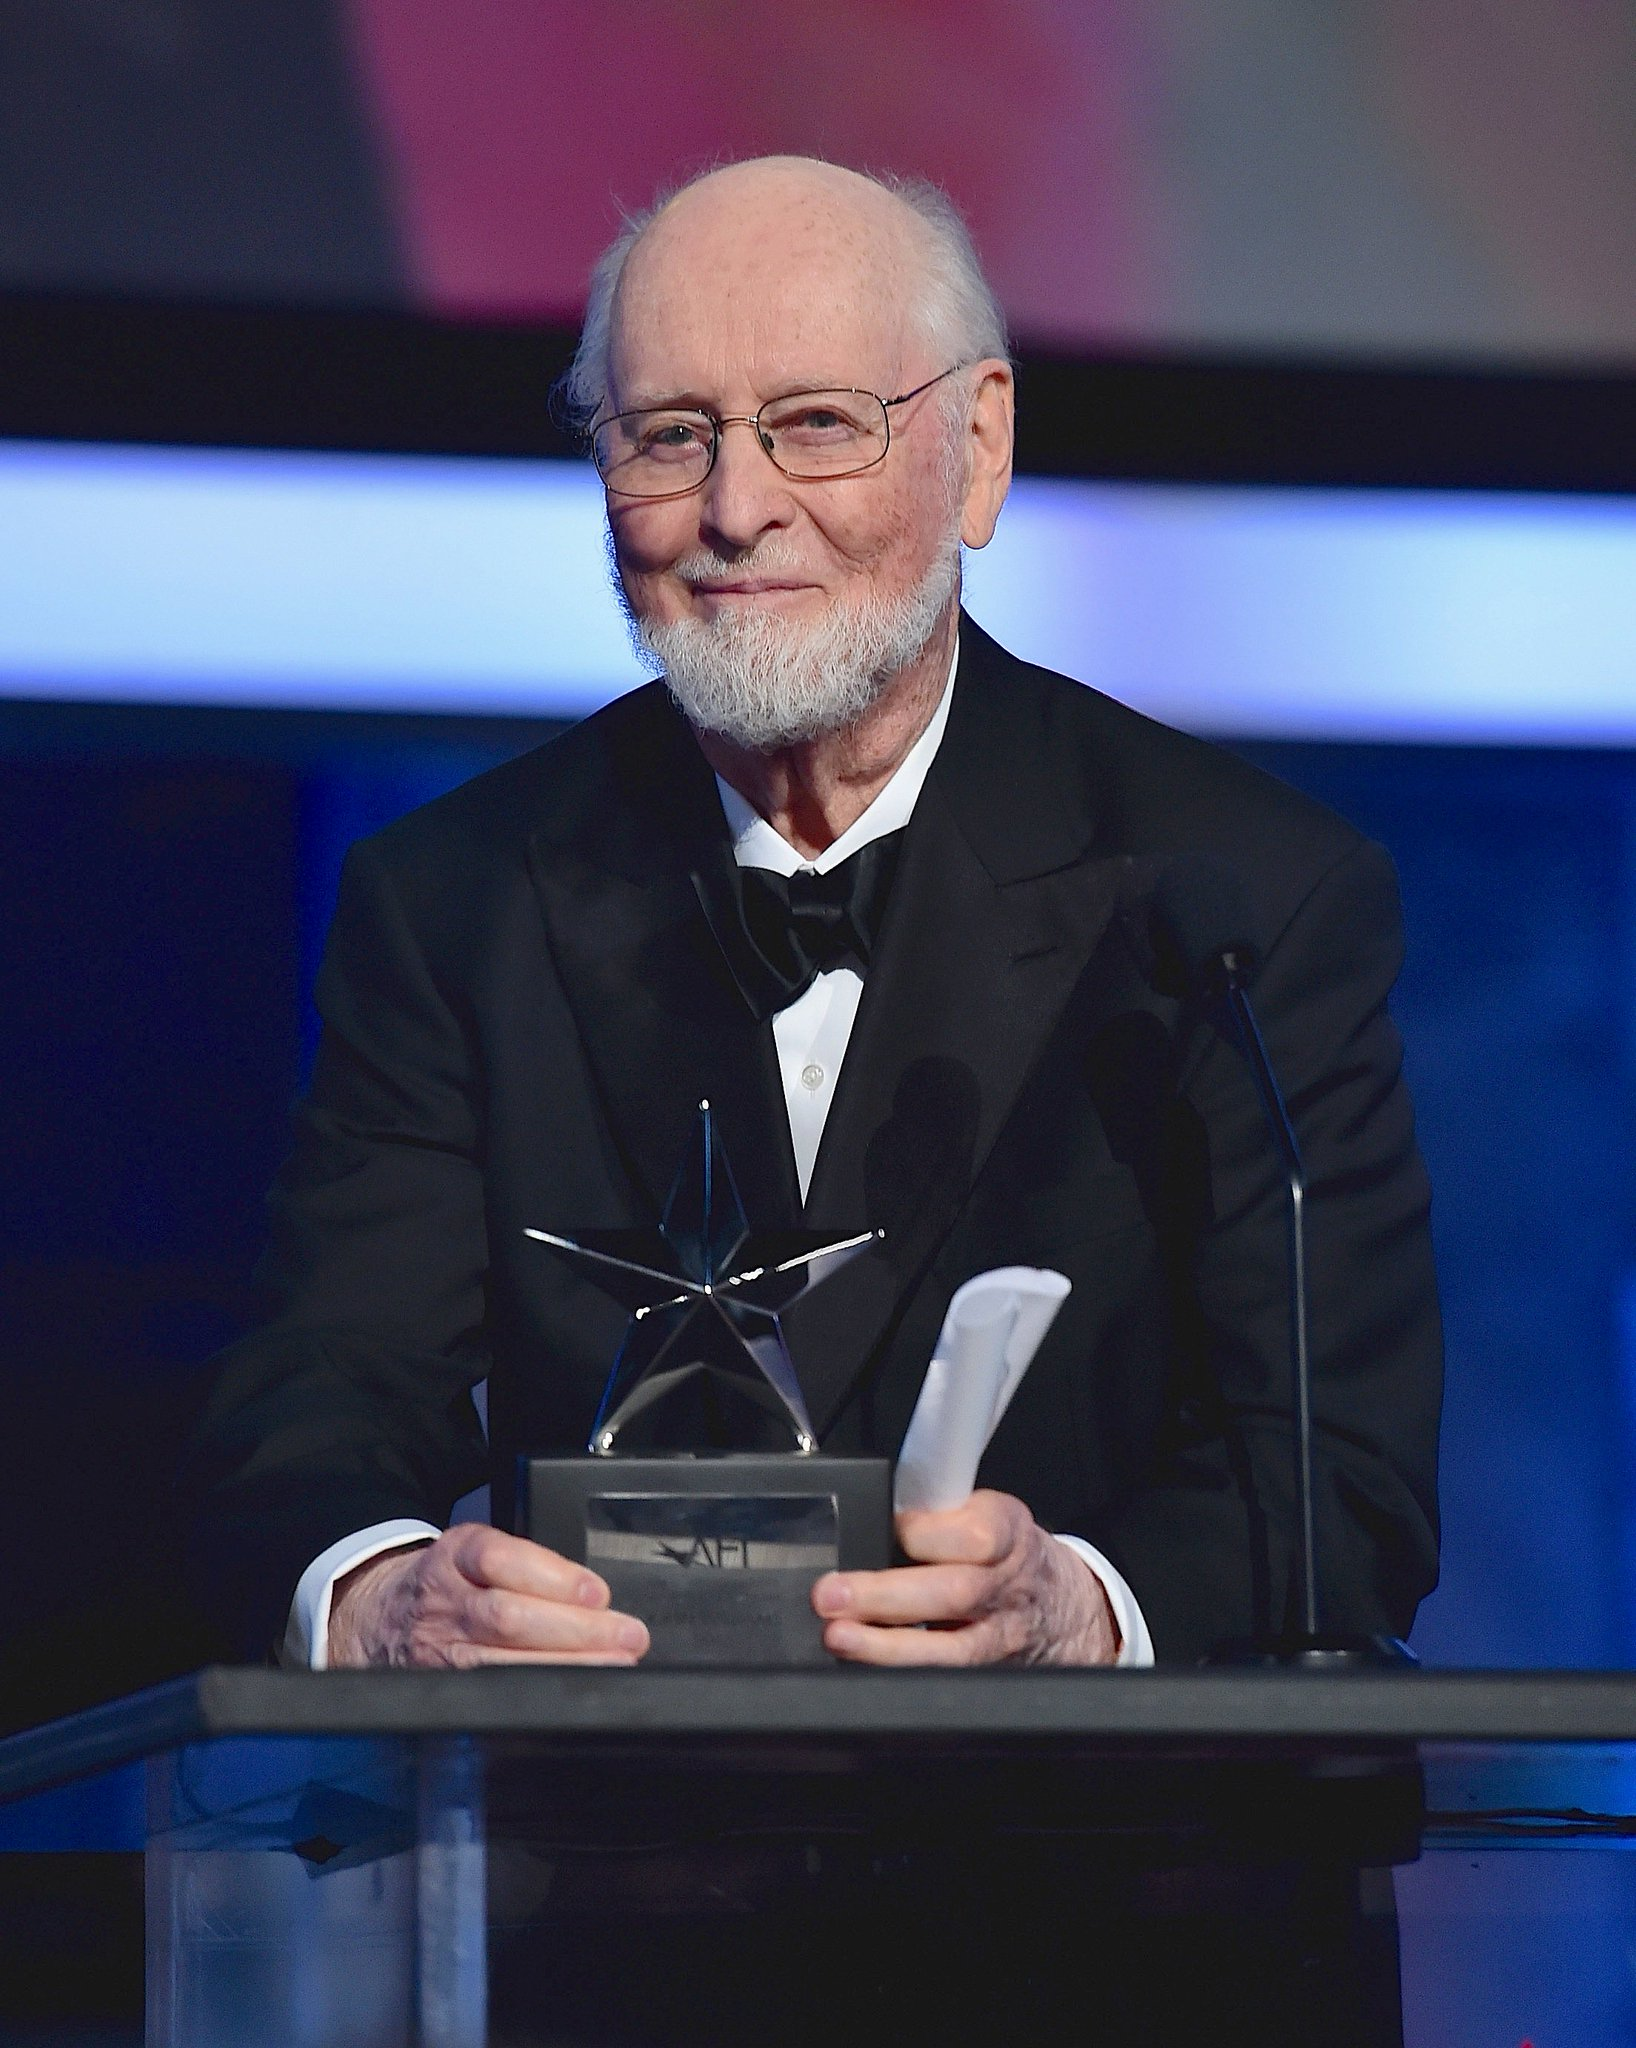 Congratulations on receiving the 44th #AFILife Achievement Award, John Williams! https://t.co/Z7SE497SzG